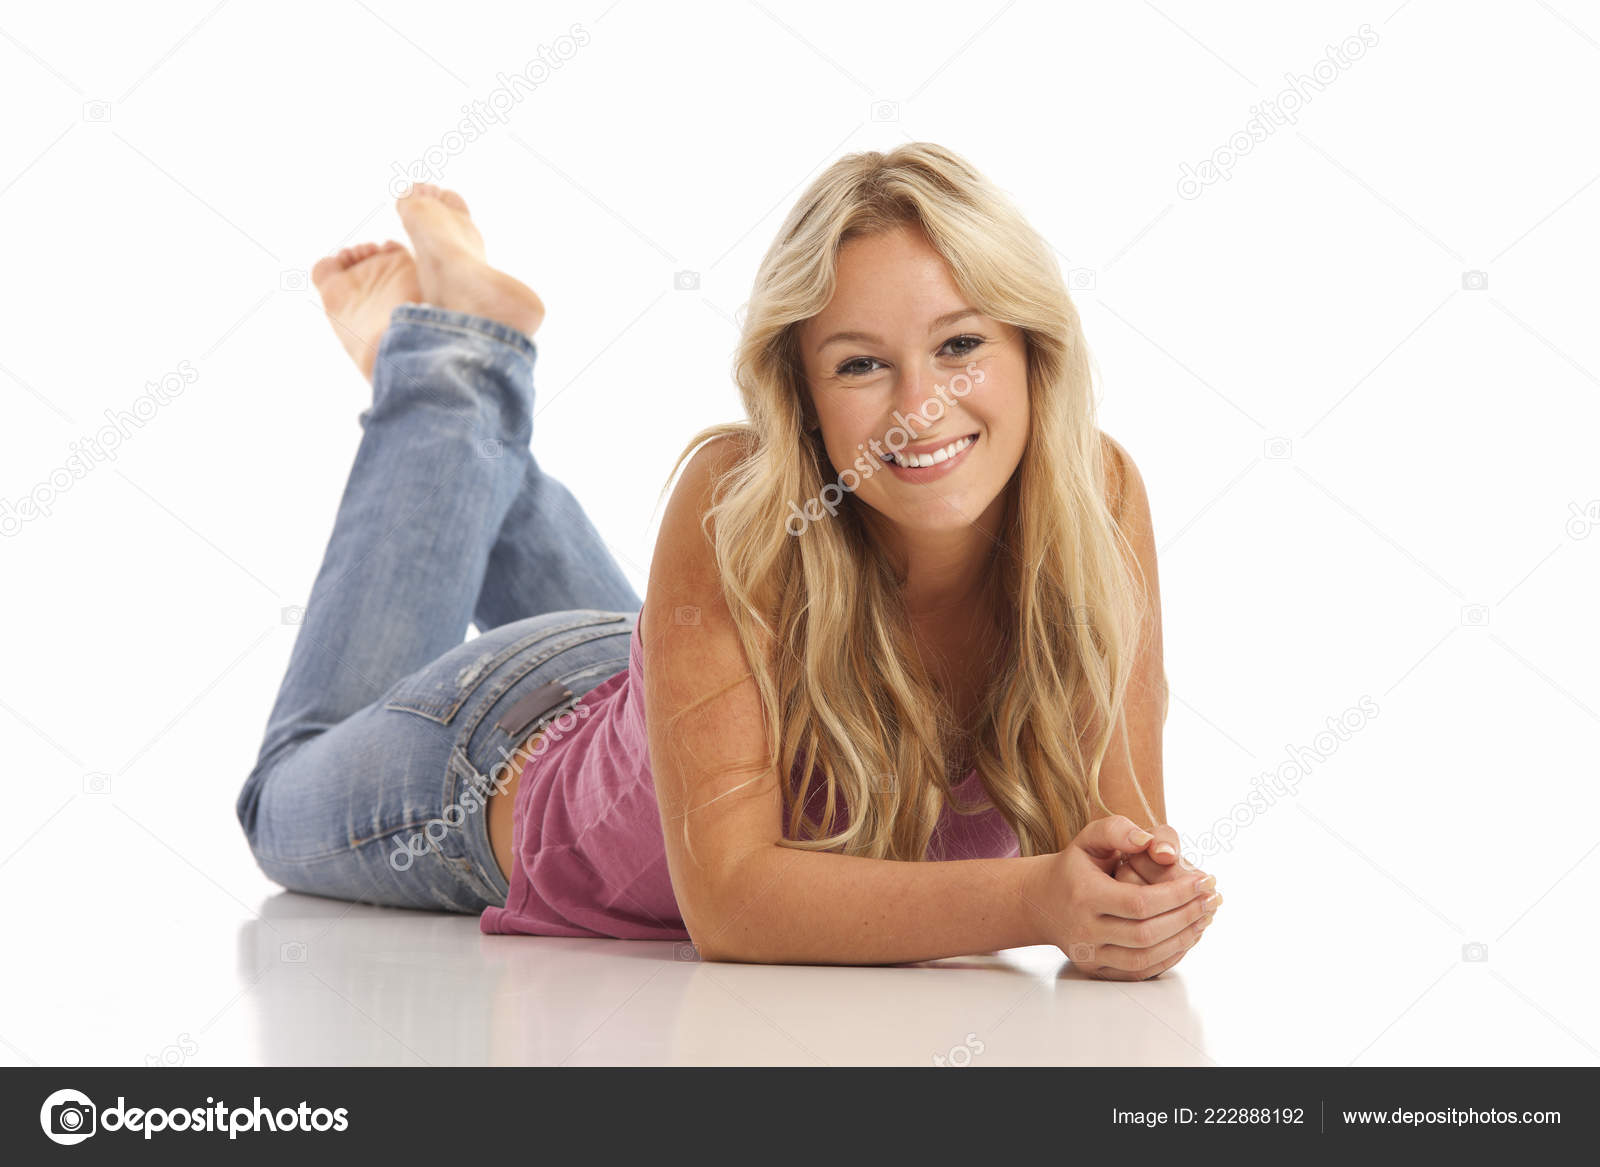 Suggest babes in jeans laying